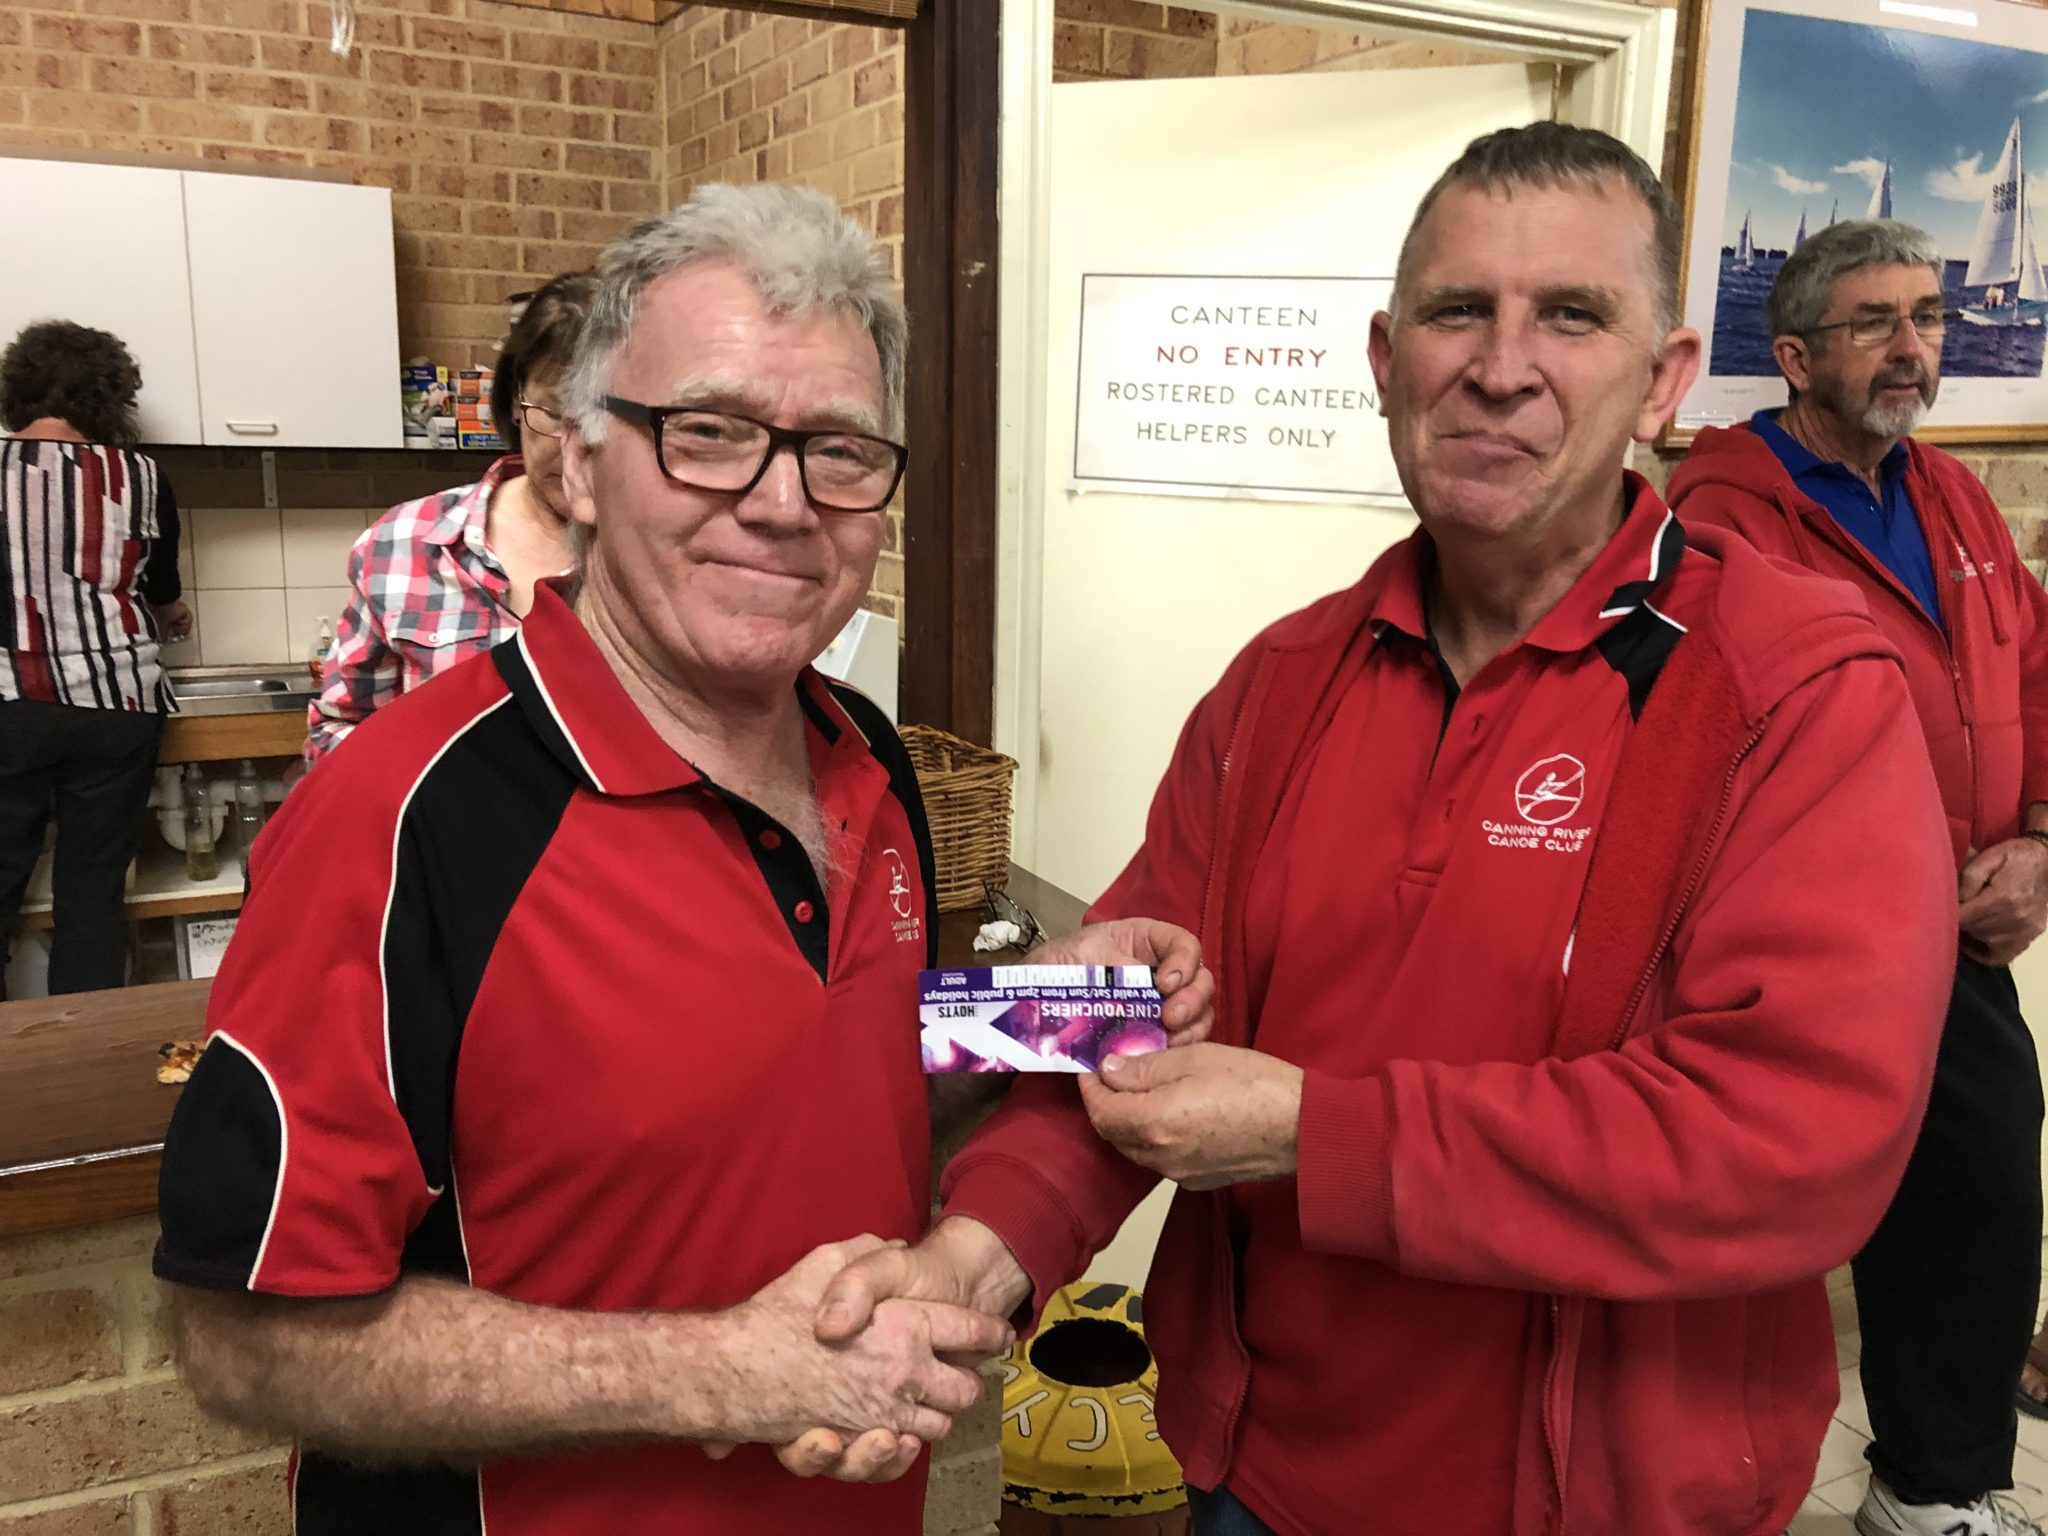 Tuesday 4th June 2018 : Tonight's photo shows club member David Brown presenting David Gardiner with the winners movie voucher.